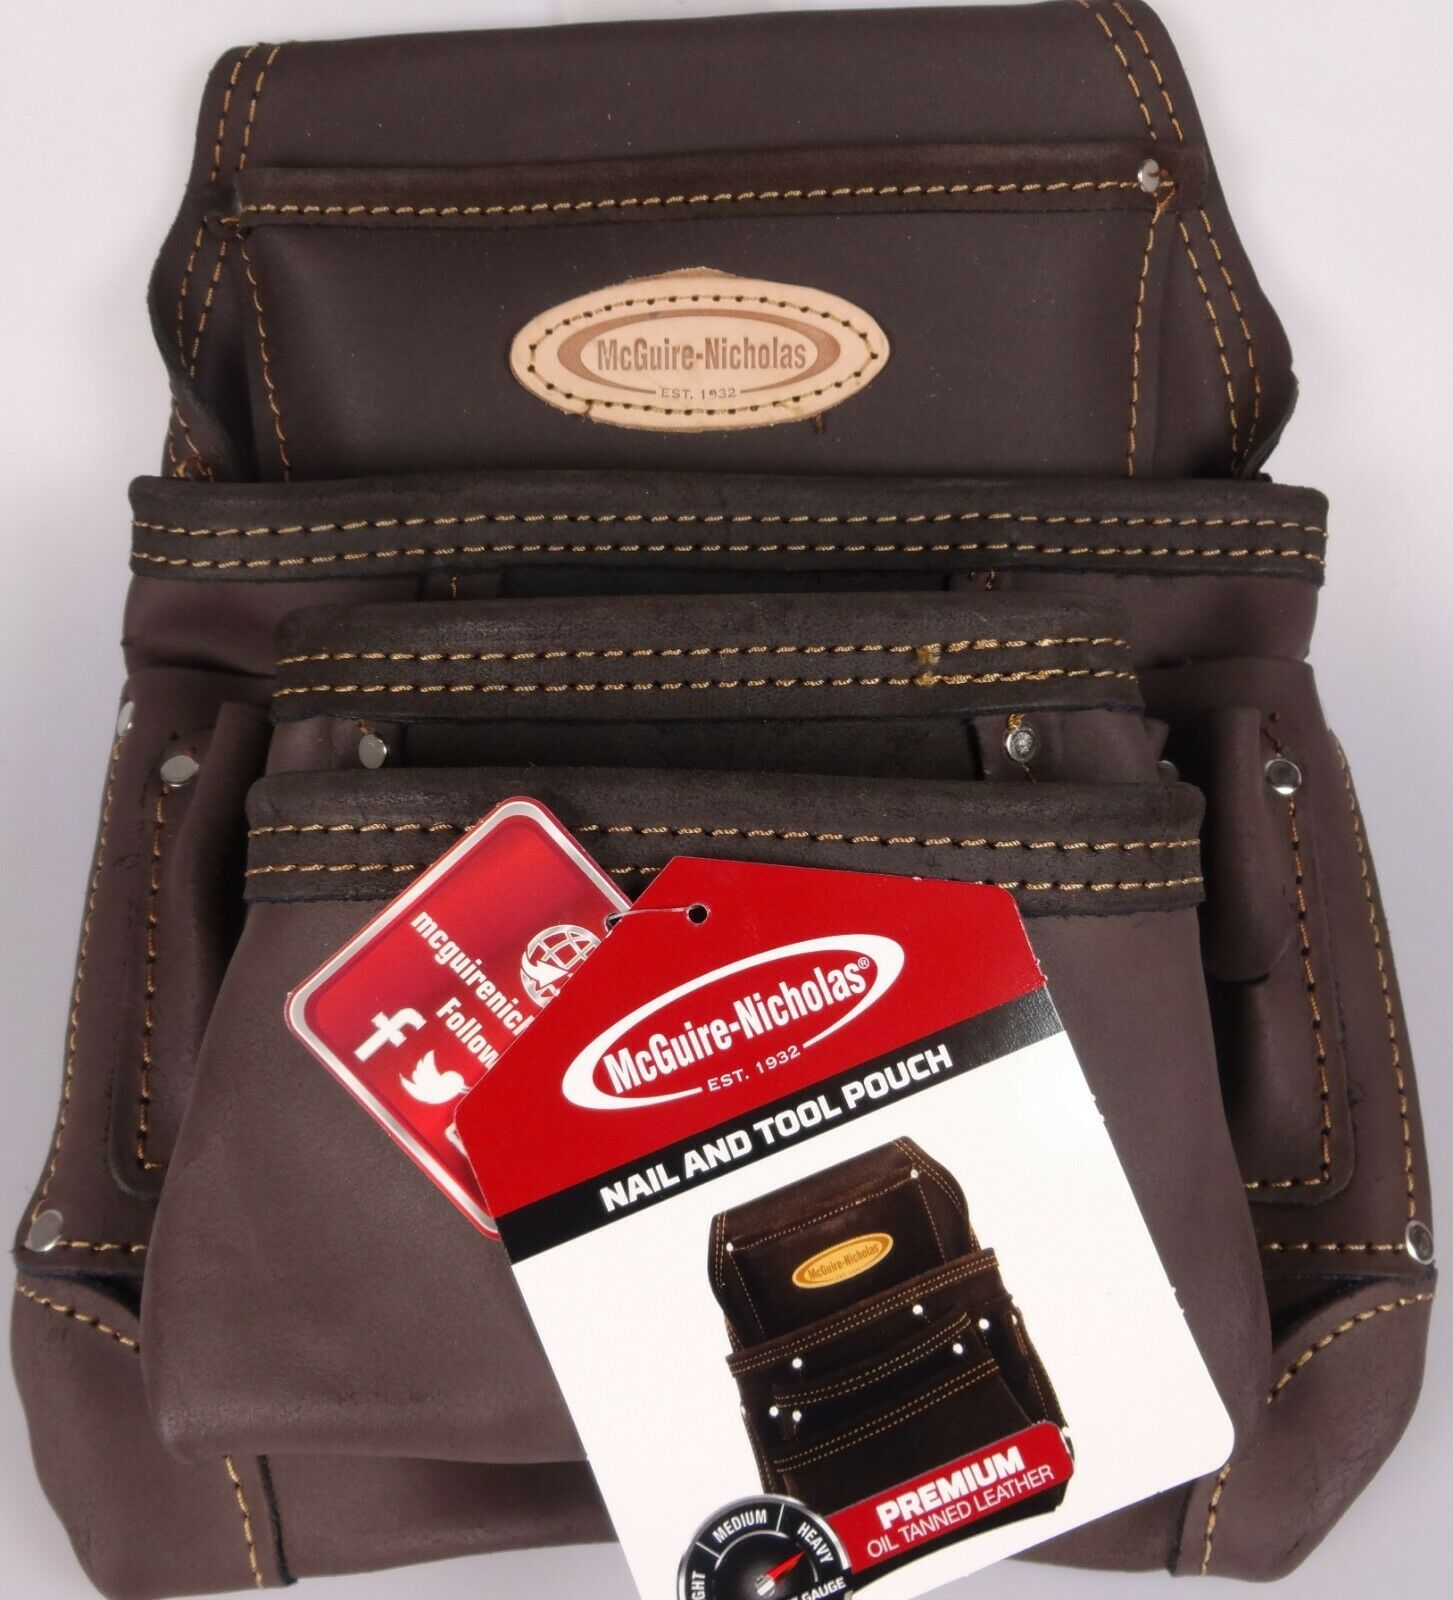 McGuire-Nicholas 870-CC 10 Pocket Nail and Tool Pouch Oil Ta